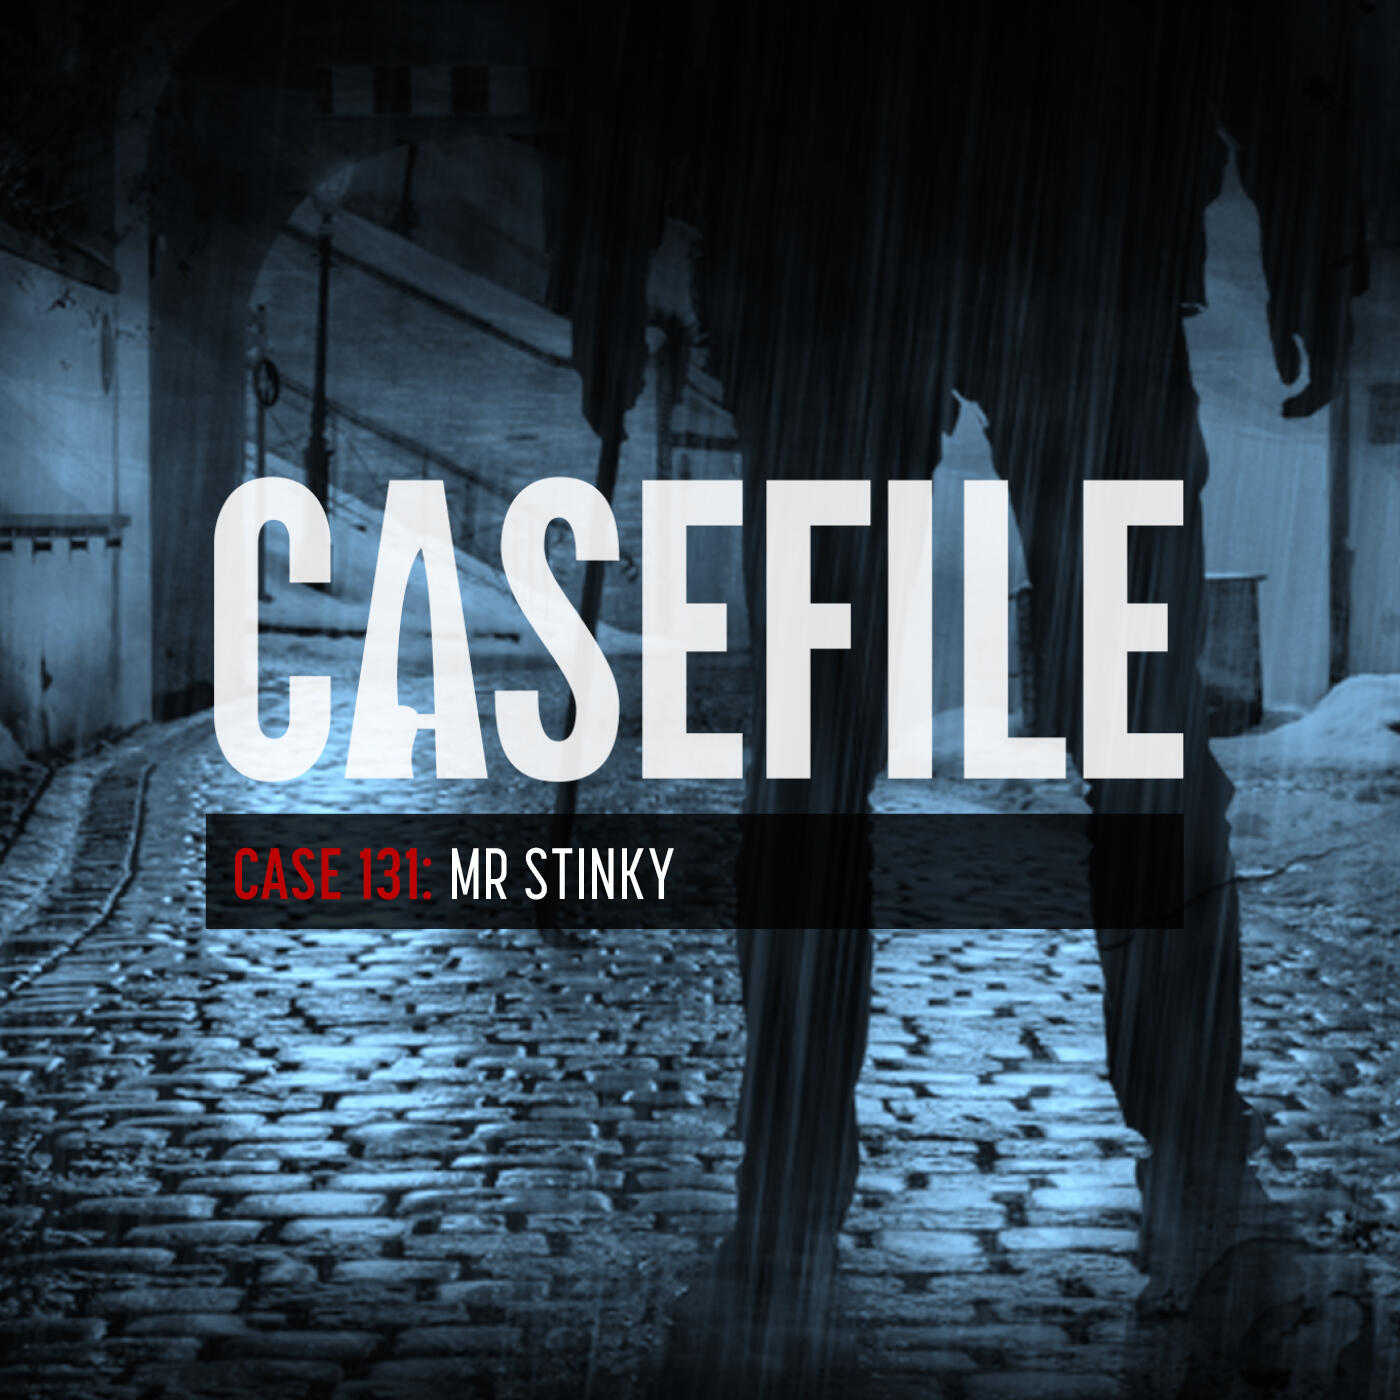 Case 131: Mr Stinky